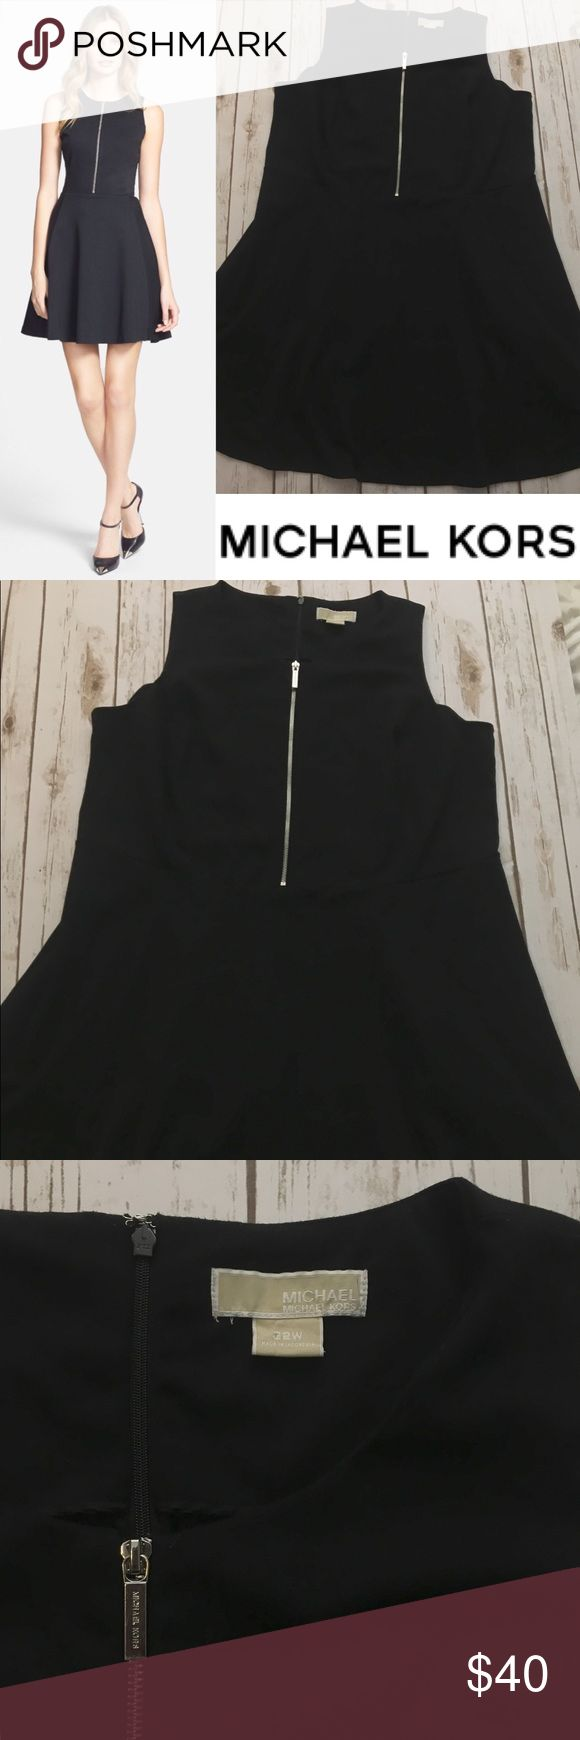 MICHAEL MICHAEL KORS Dress This gorgeous fit and flair dress by Michael KORS is perfect for any occasion. This piece can be layered with a blazer for the office, a denim jacket and flats for a casual event and strappy heels for a night out! Size 22. MICHAEL Michael Kors Dresses